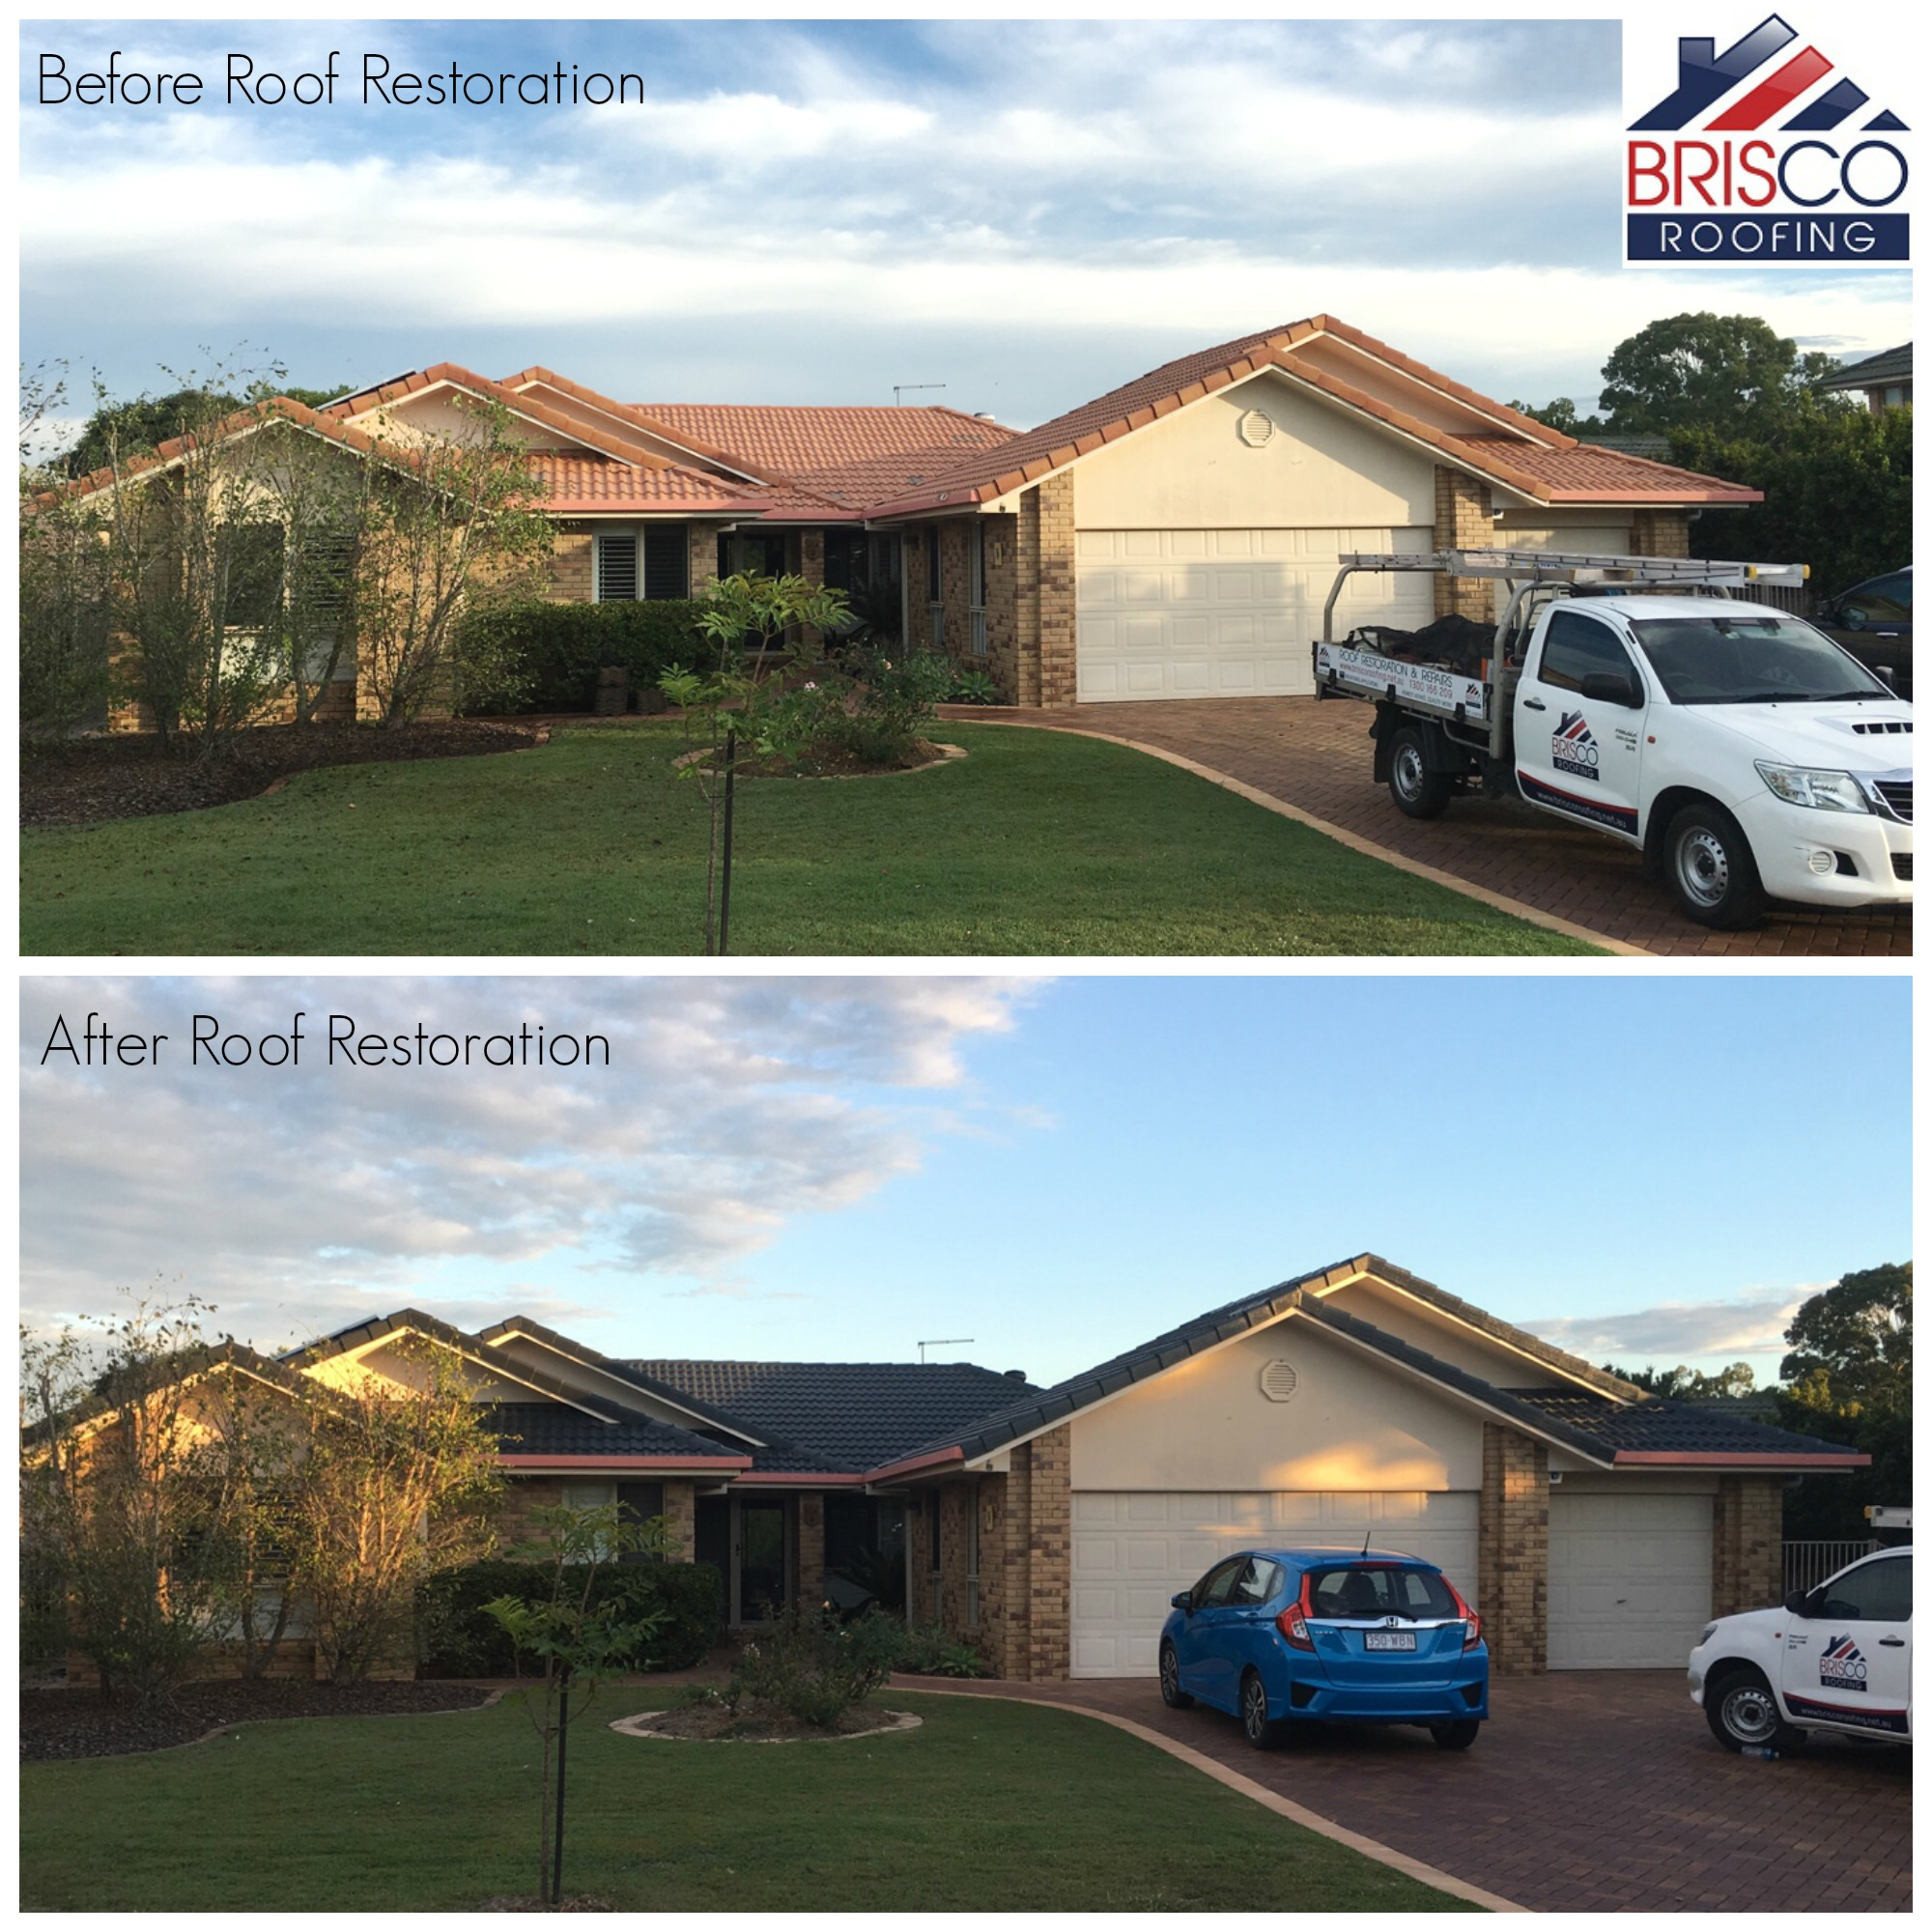 Roof Restoration Before and After Brisbane